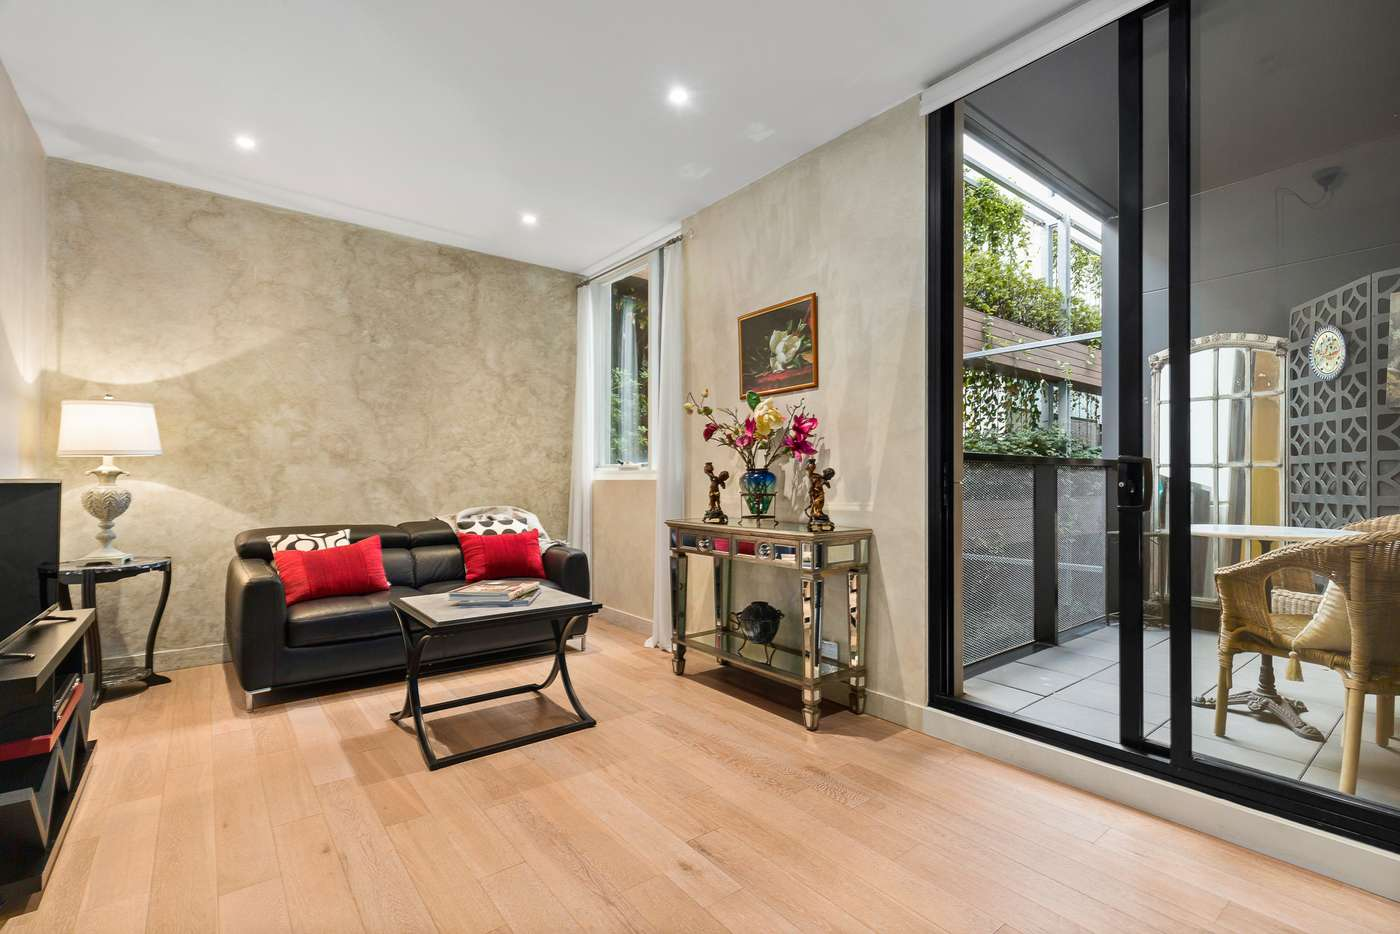 Main view of Homely apartment listing, 208/9 Darling St, South Yarra VIC 3141